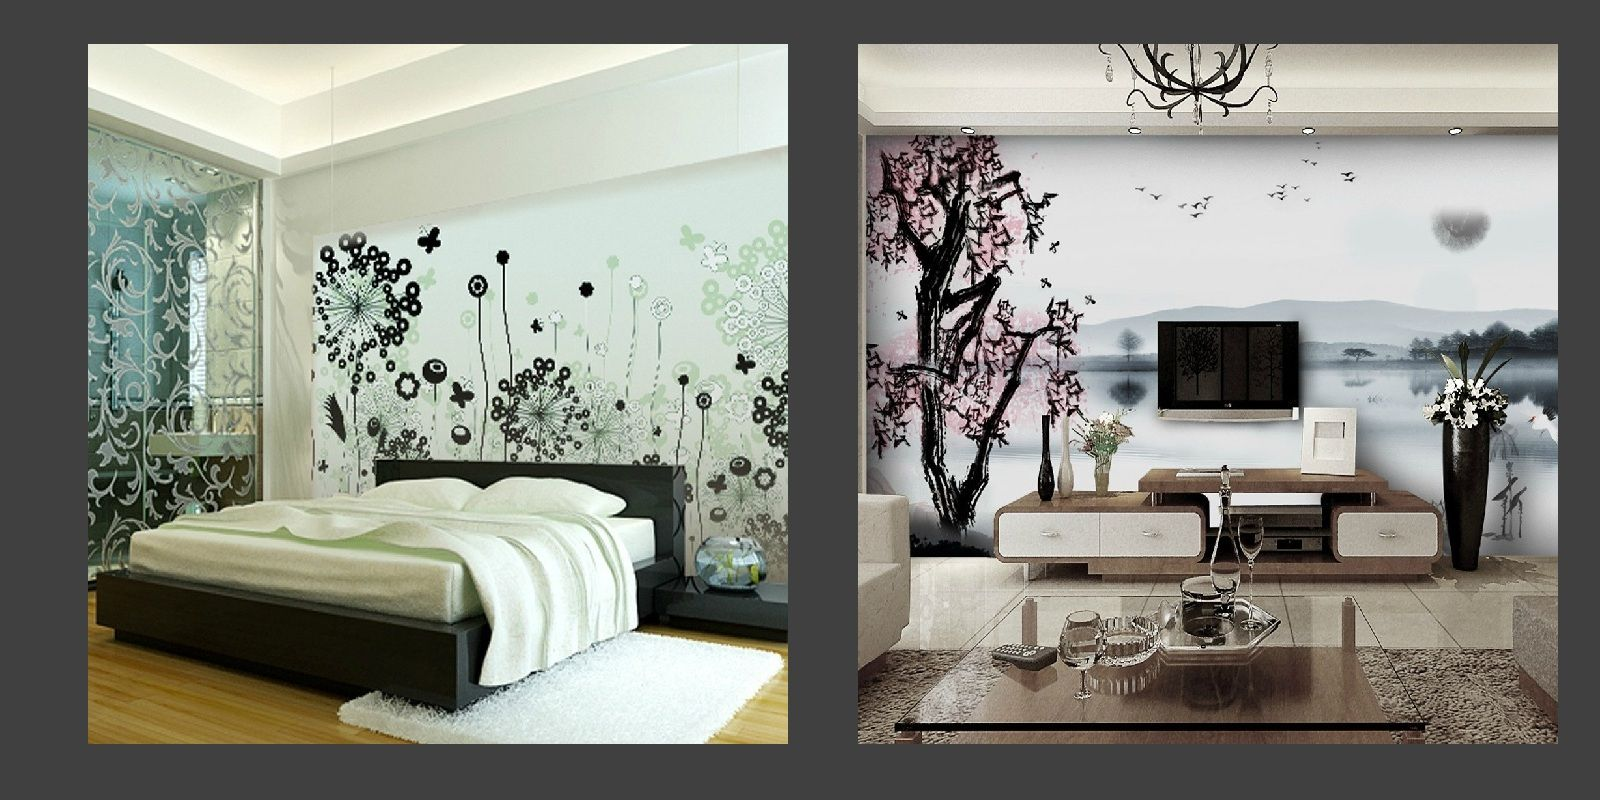 Home wallpaper design patterns home wallpaper designs for Wallpaper ideas for your home